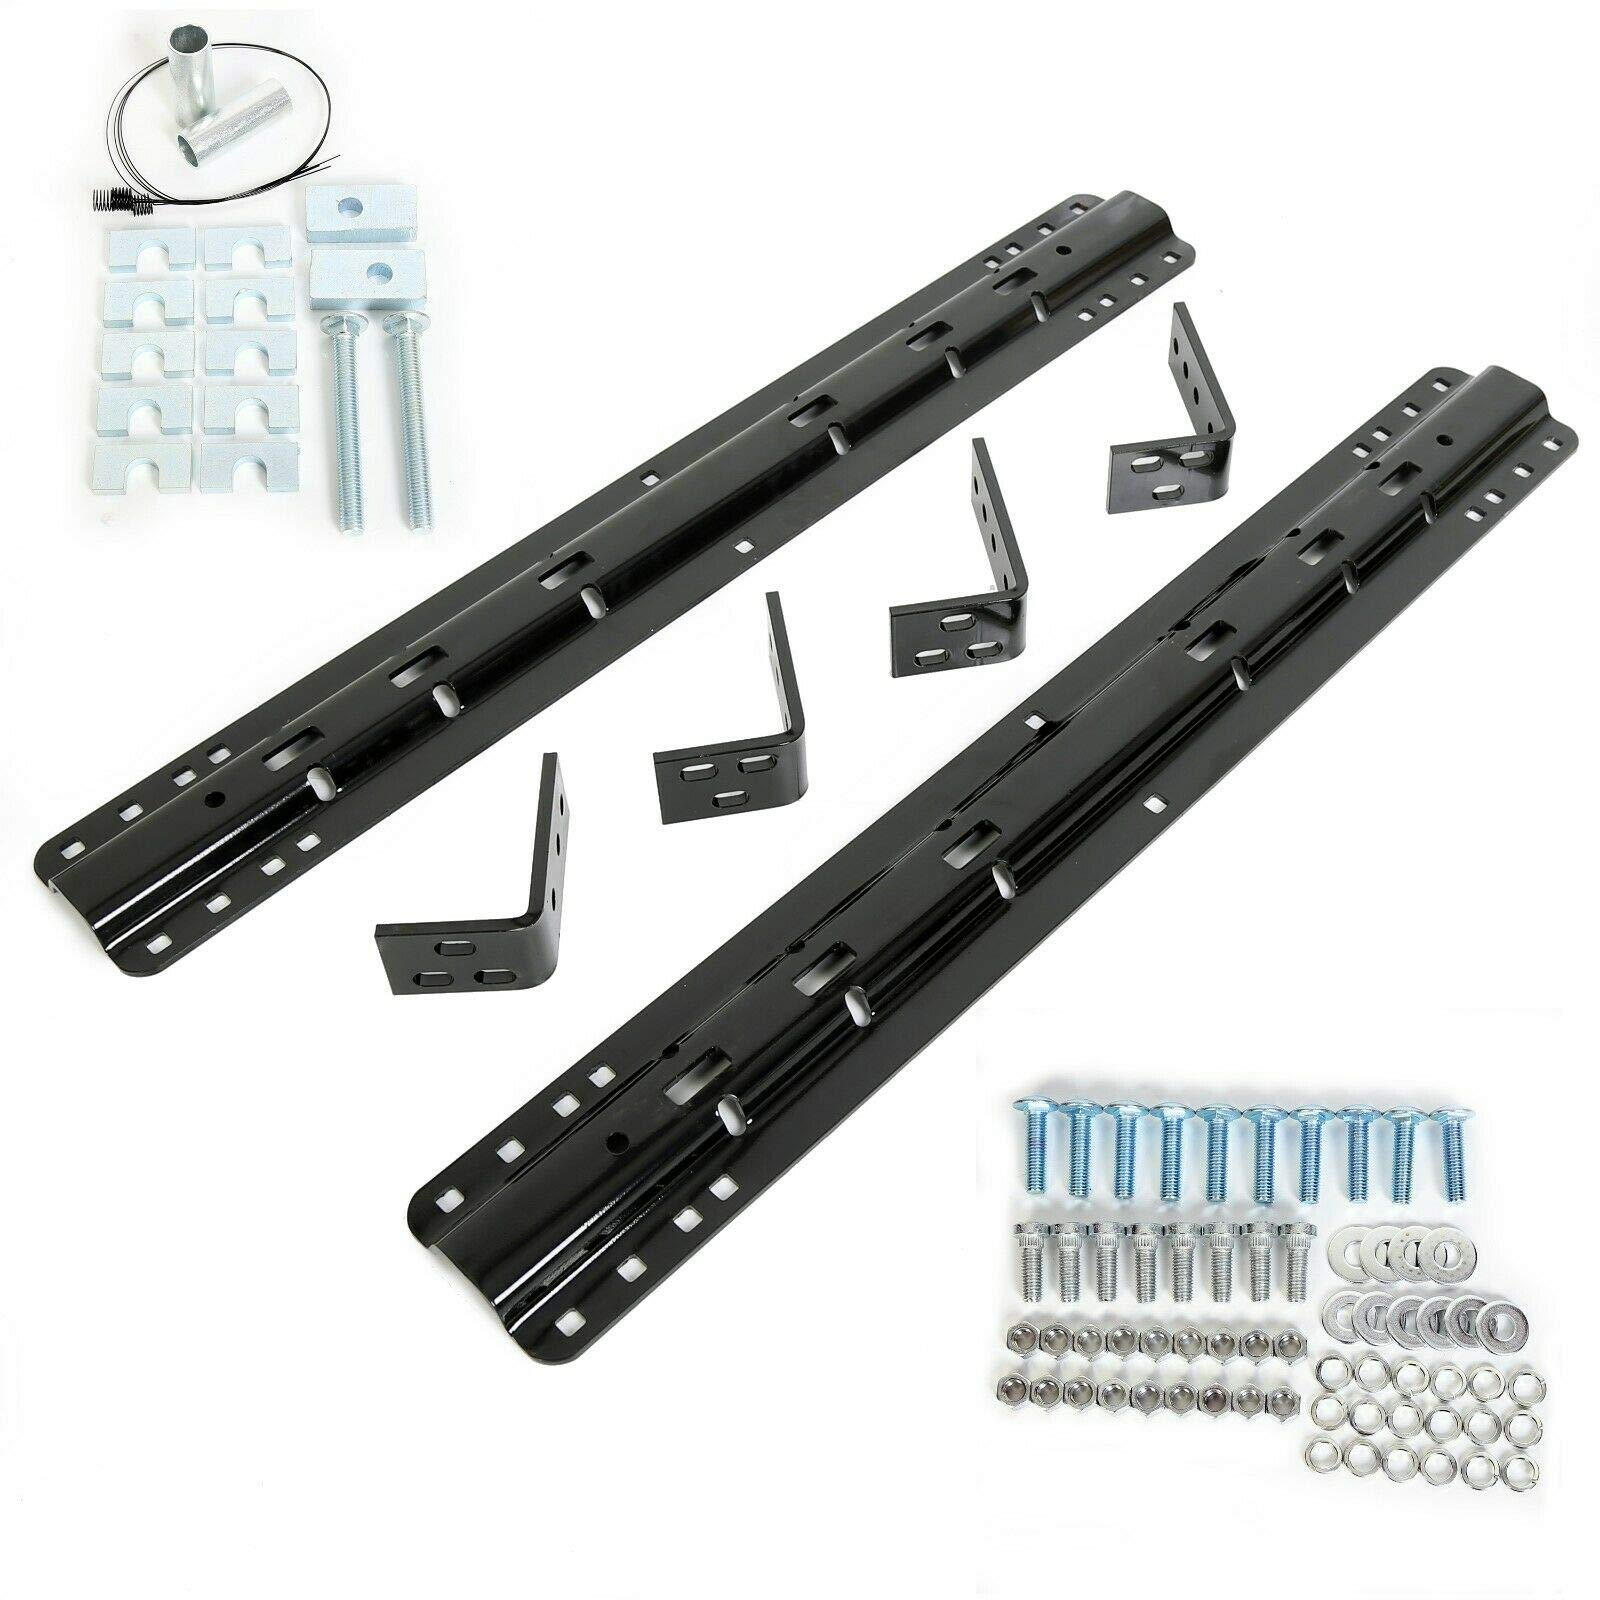 Onemoto 20K 5th Fifth Wheel Mounting Rail Kit Trailer Hitch Mount Fit Reese Pro Series by Onemoto